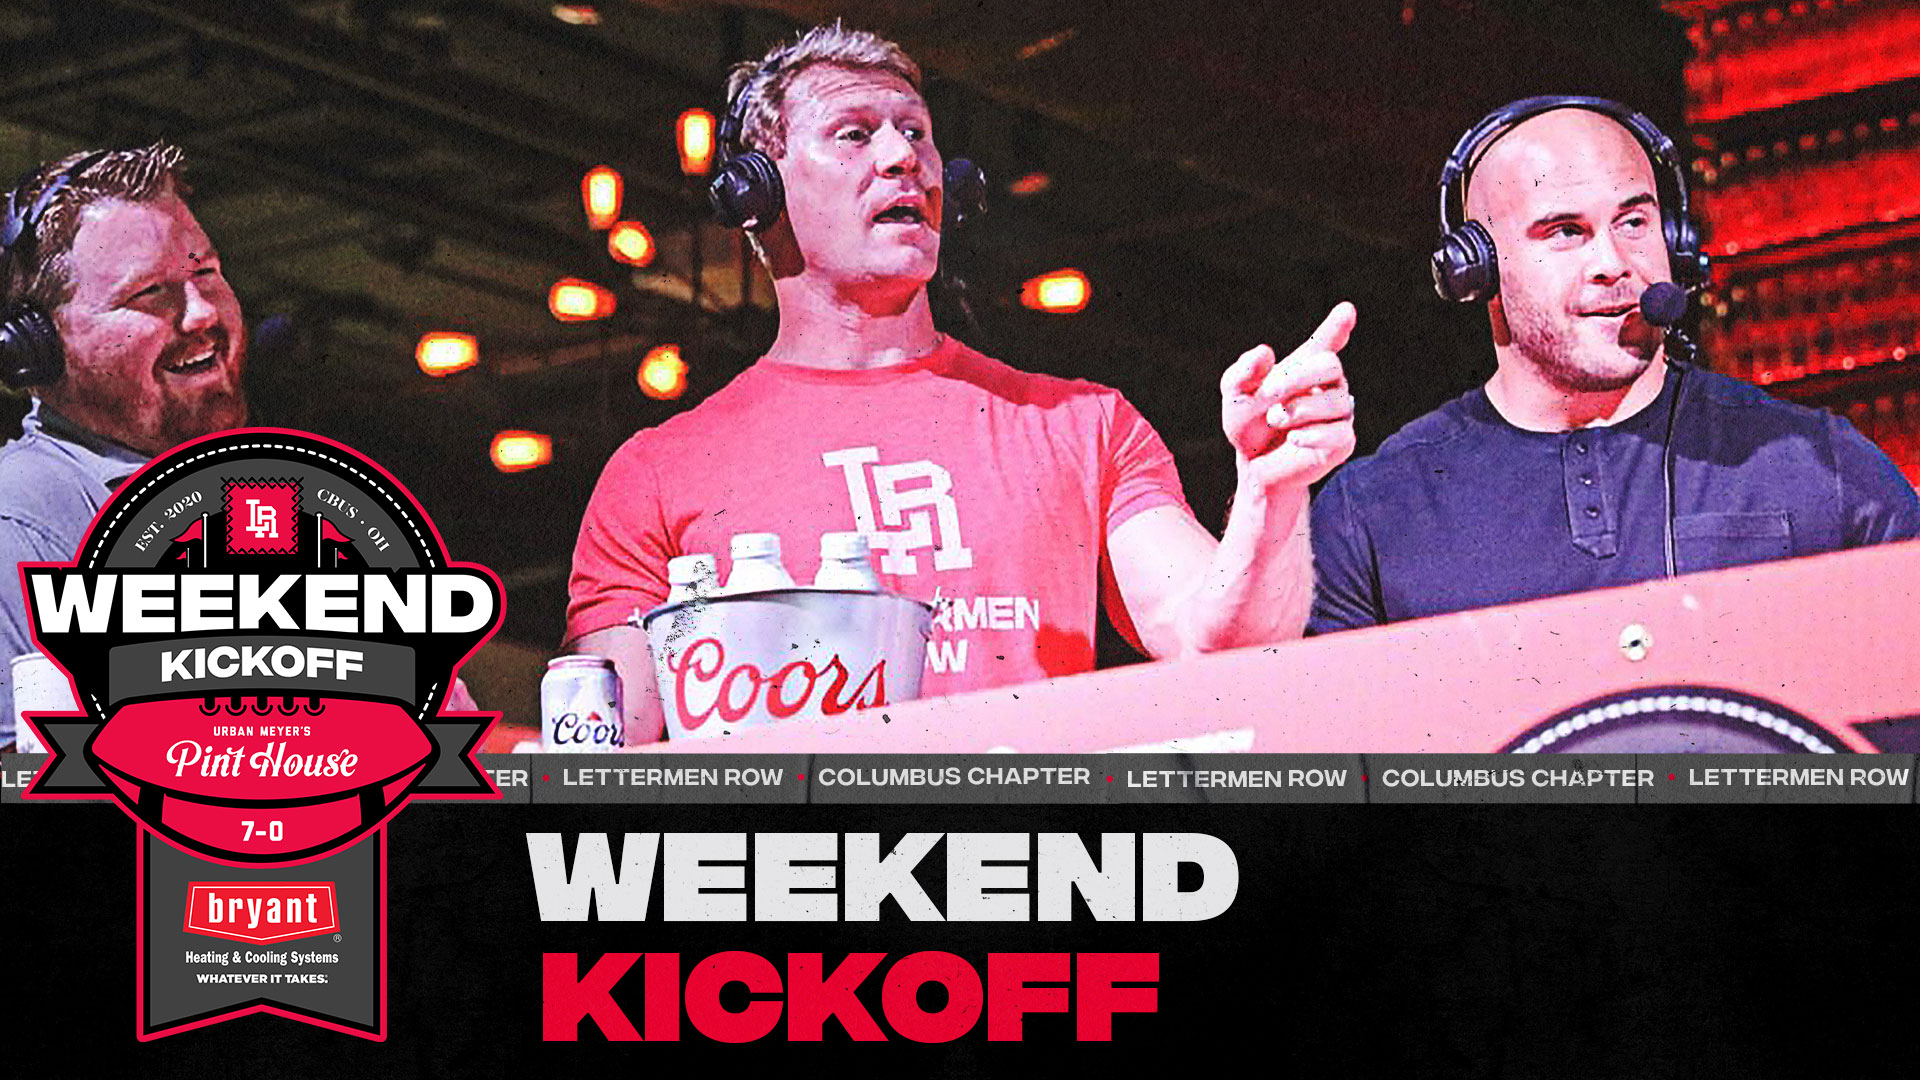 Weekend-Kickoff-oct-22-featured-image-revised